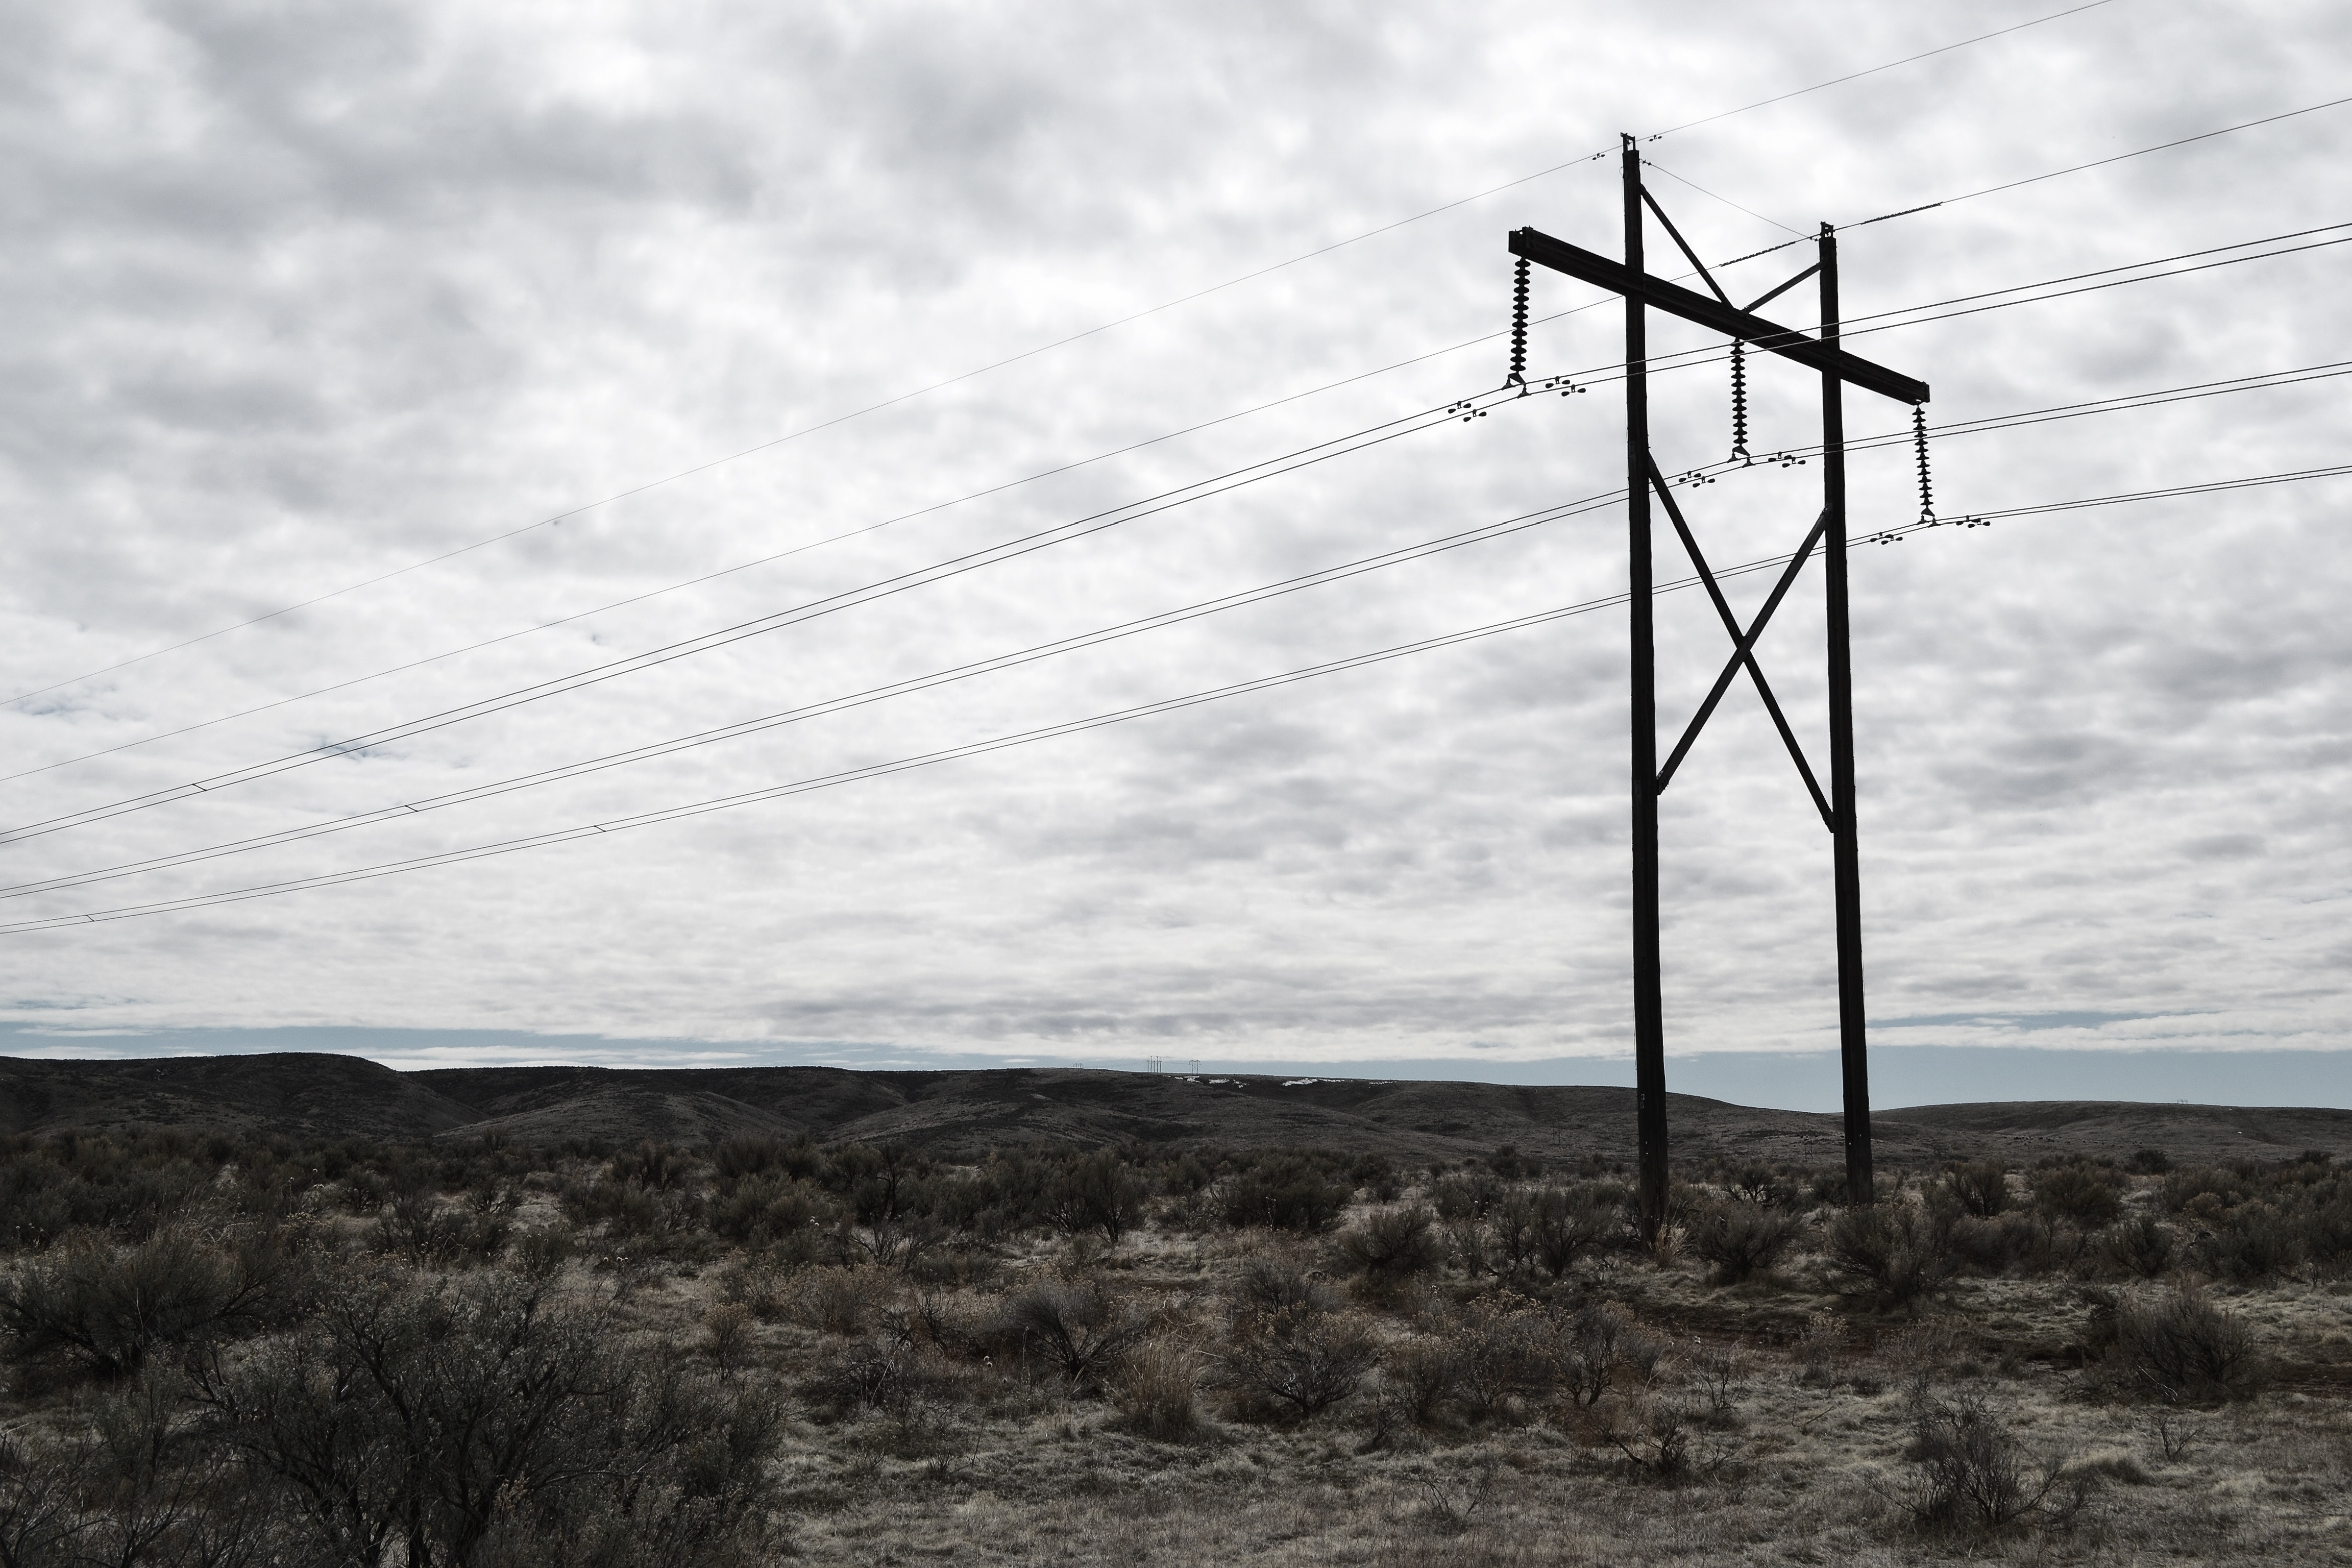 Photograph of Electrical Post on Cloudy Day, Cables, Outdoors, Wind, Voltage, HQ Photo